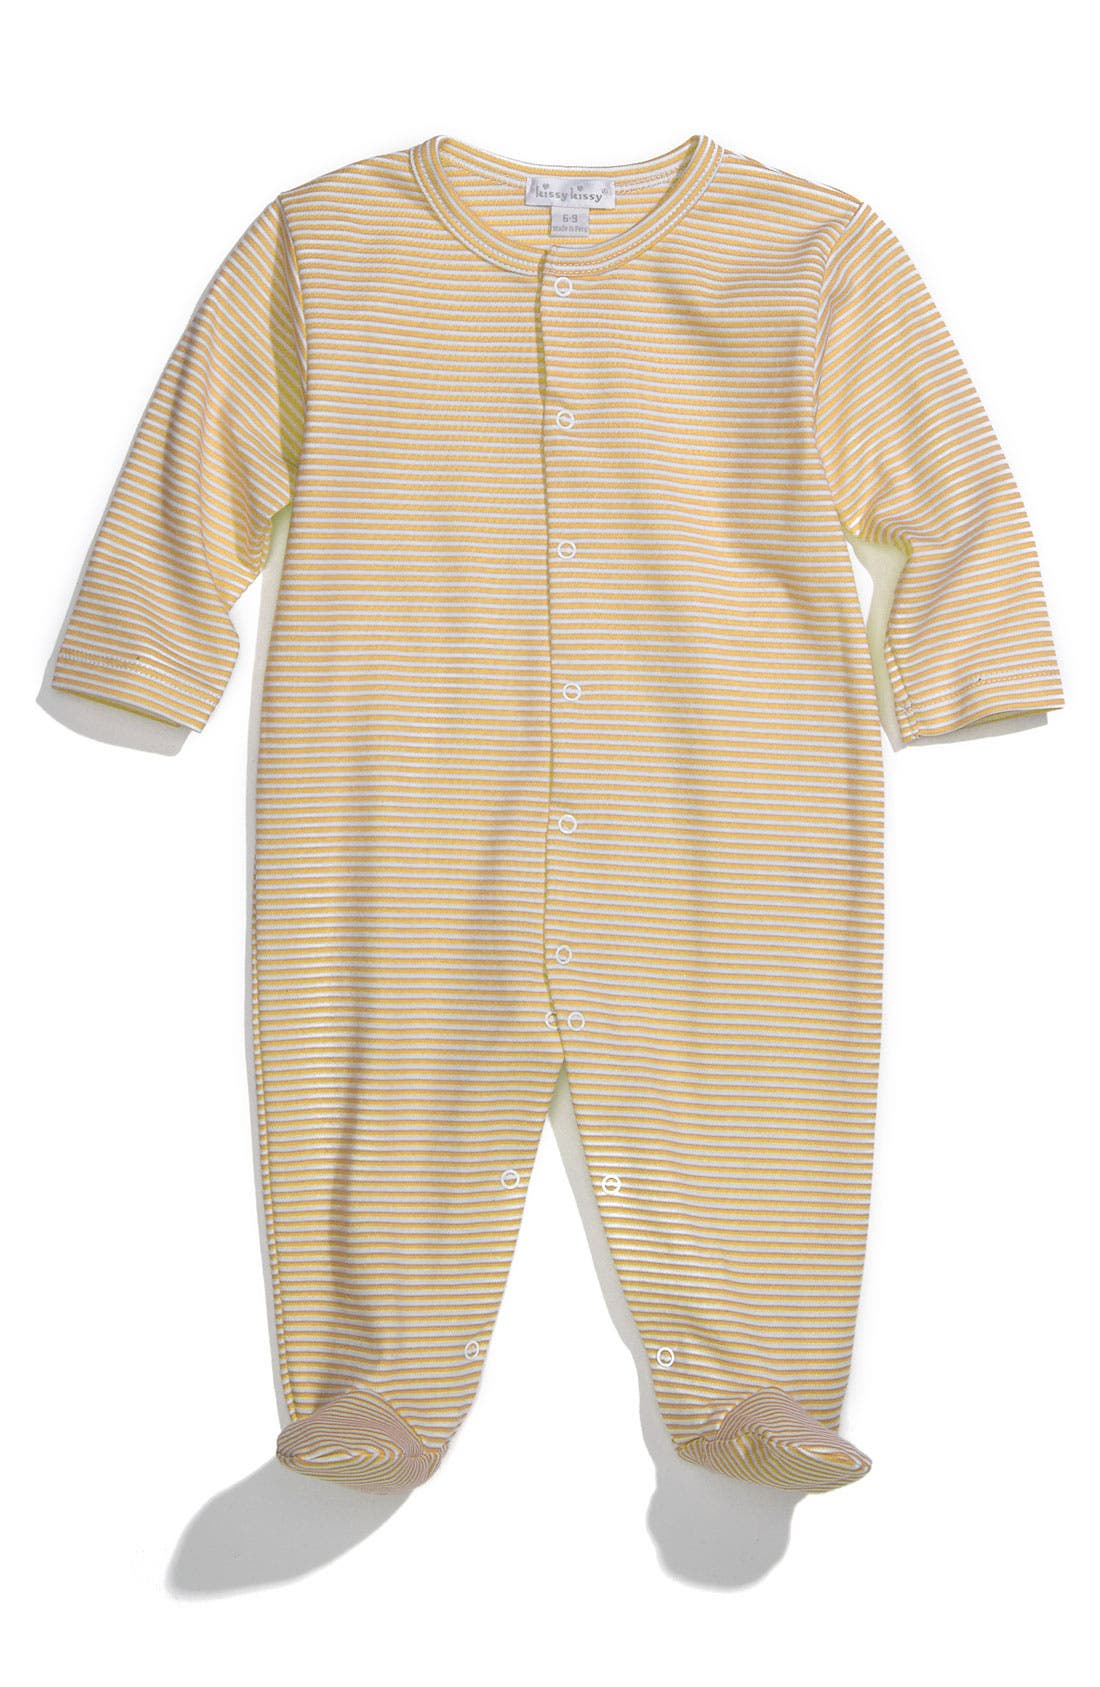 Alternate Image 1 Selected - Kissy Kissy Pima Cotton Footie (Baby)